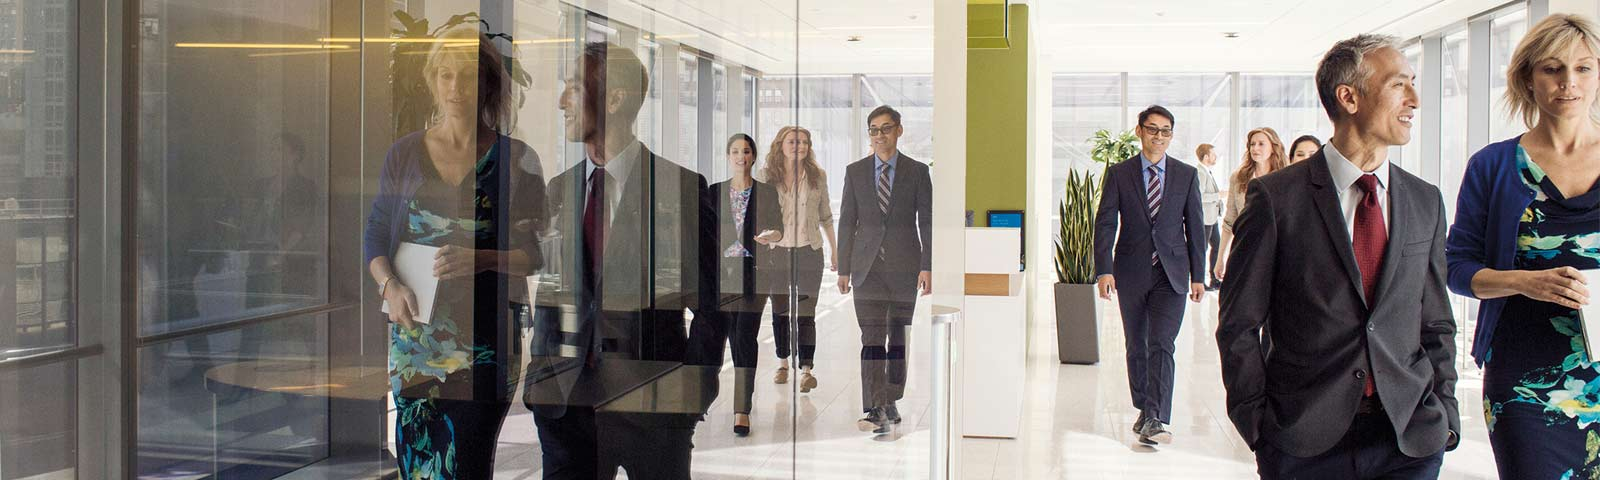 Coworkers walking down hallway, glass showing reflections